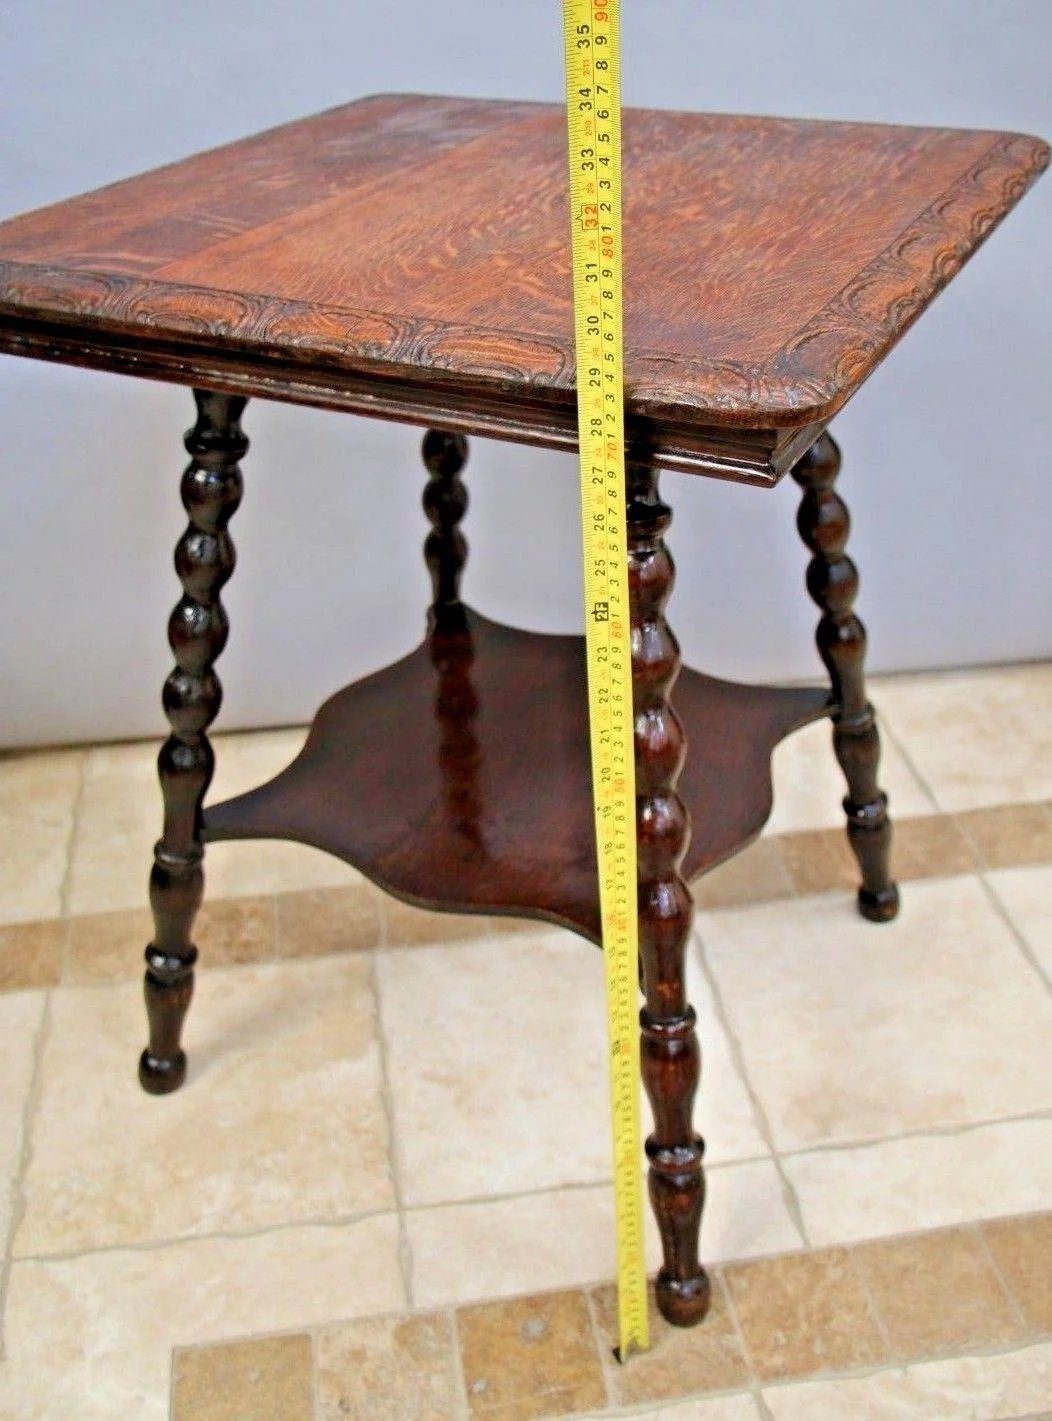 Antique Square Two Tier Parlor Table Stand Tiger Oak Carved Top Side At Melrose Vintage And